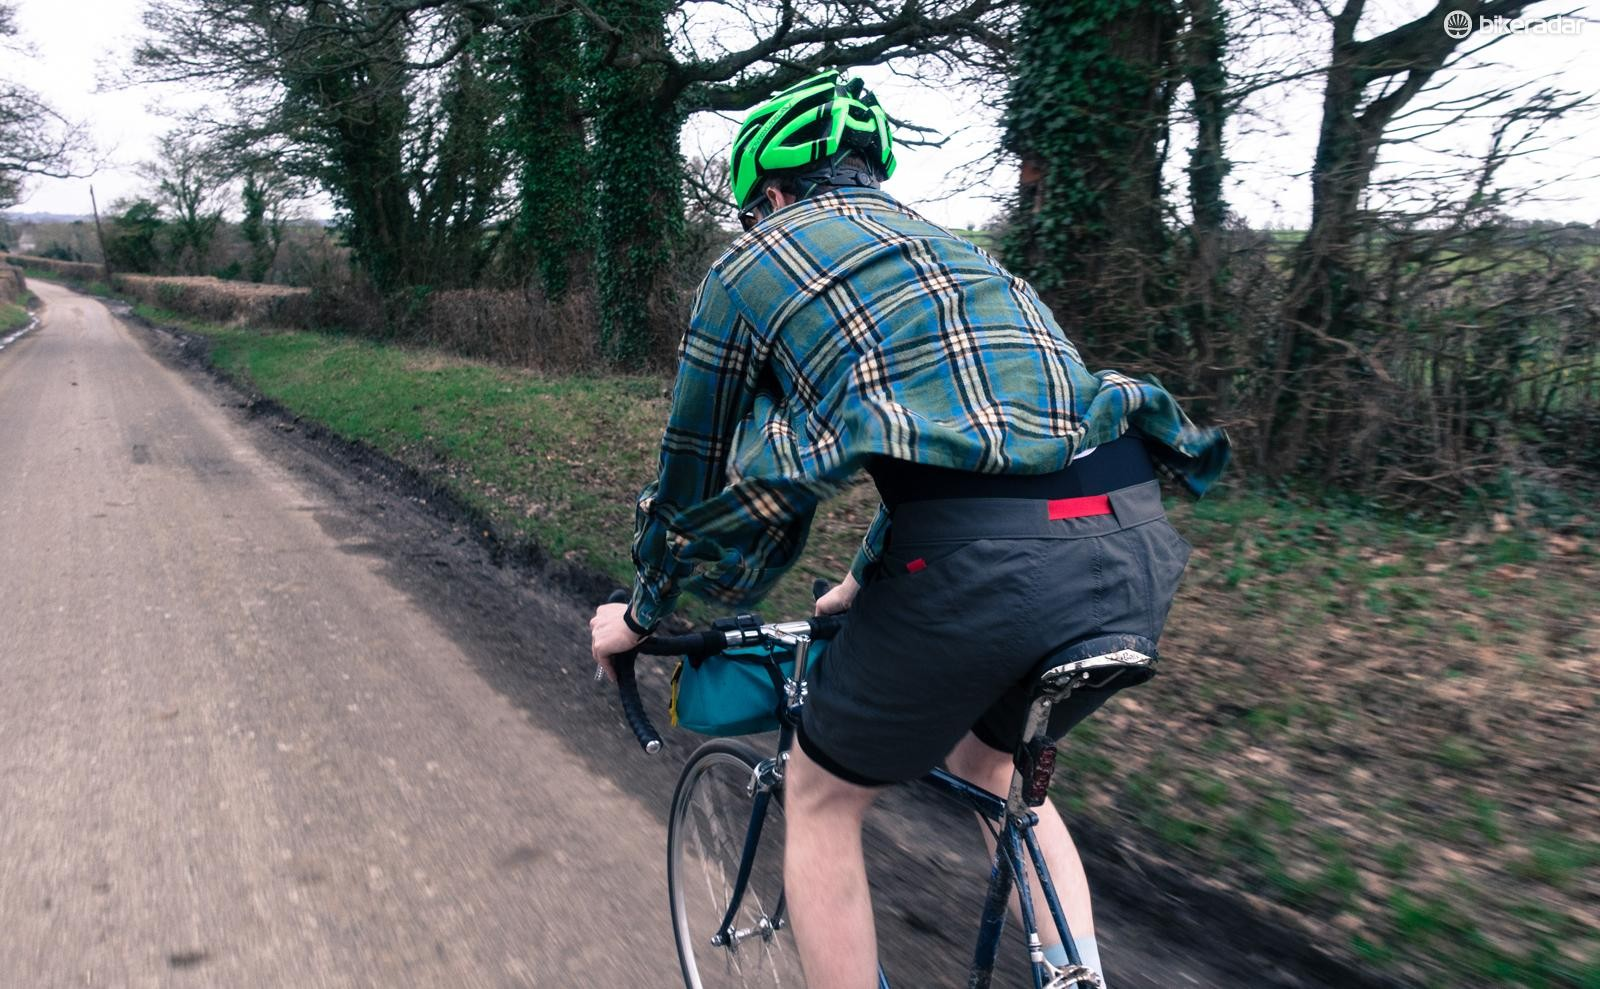 Trendy flannel shirts are mandatory when riding a fixie along back lanes